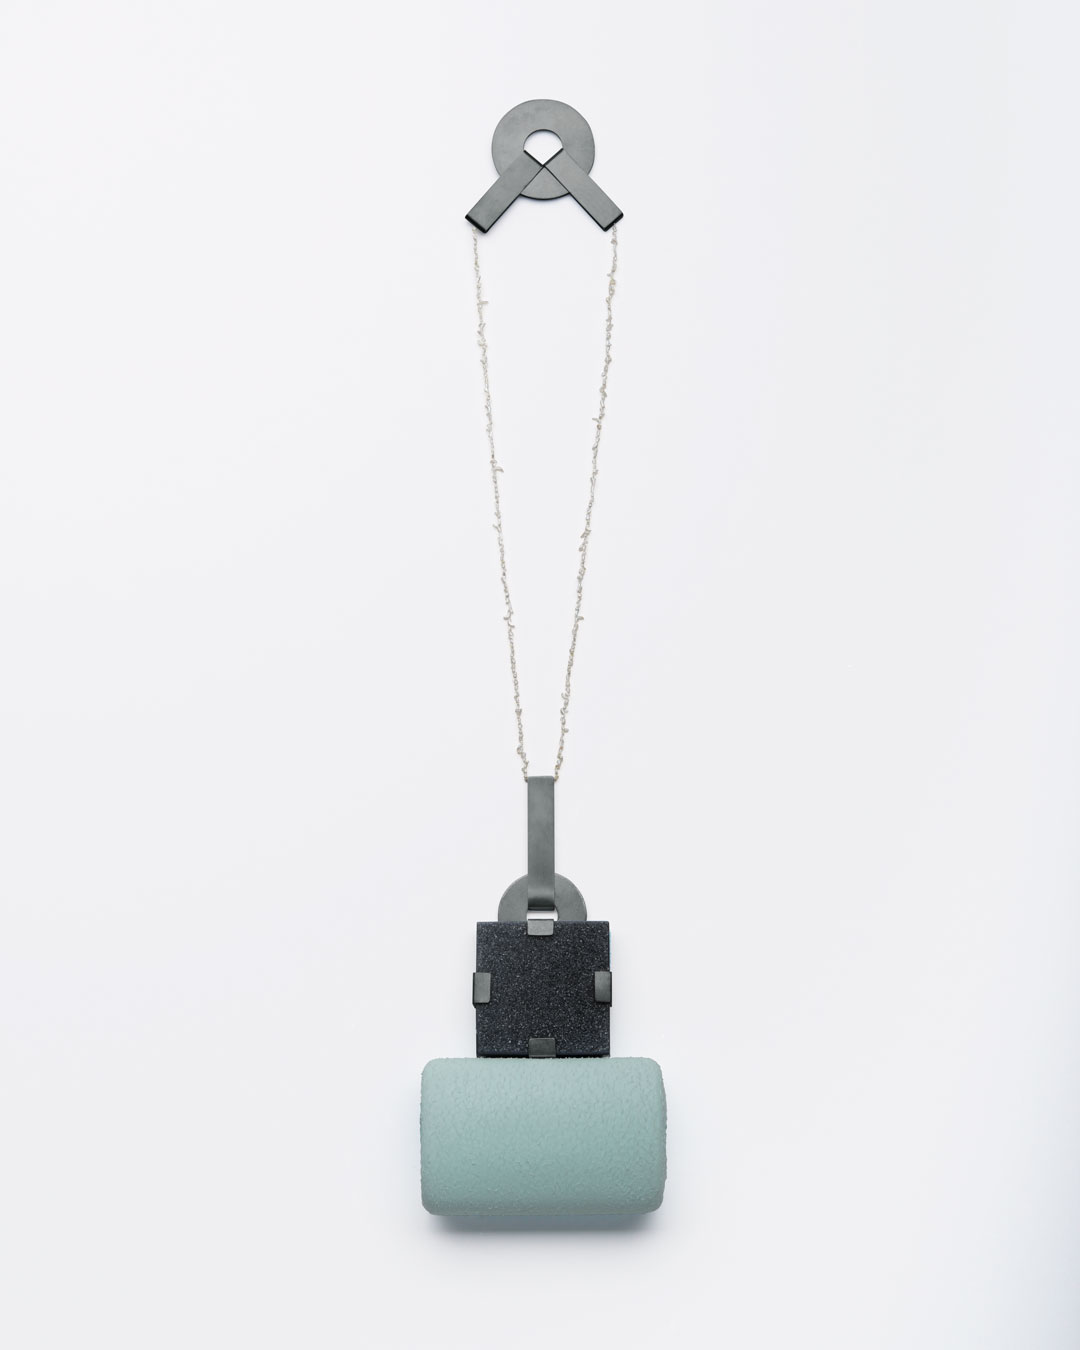 Ute Eitzenhöfer, untitled, 2013, necklace; agate, pearls, oxidised silver, plastic (from packaging), 300 x 300 x 30 mm